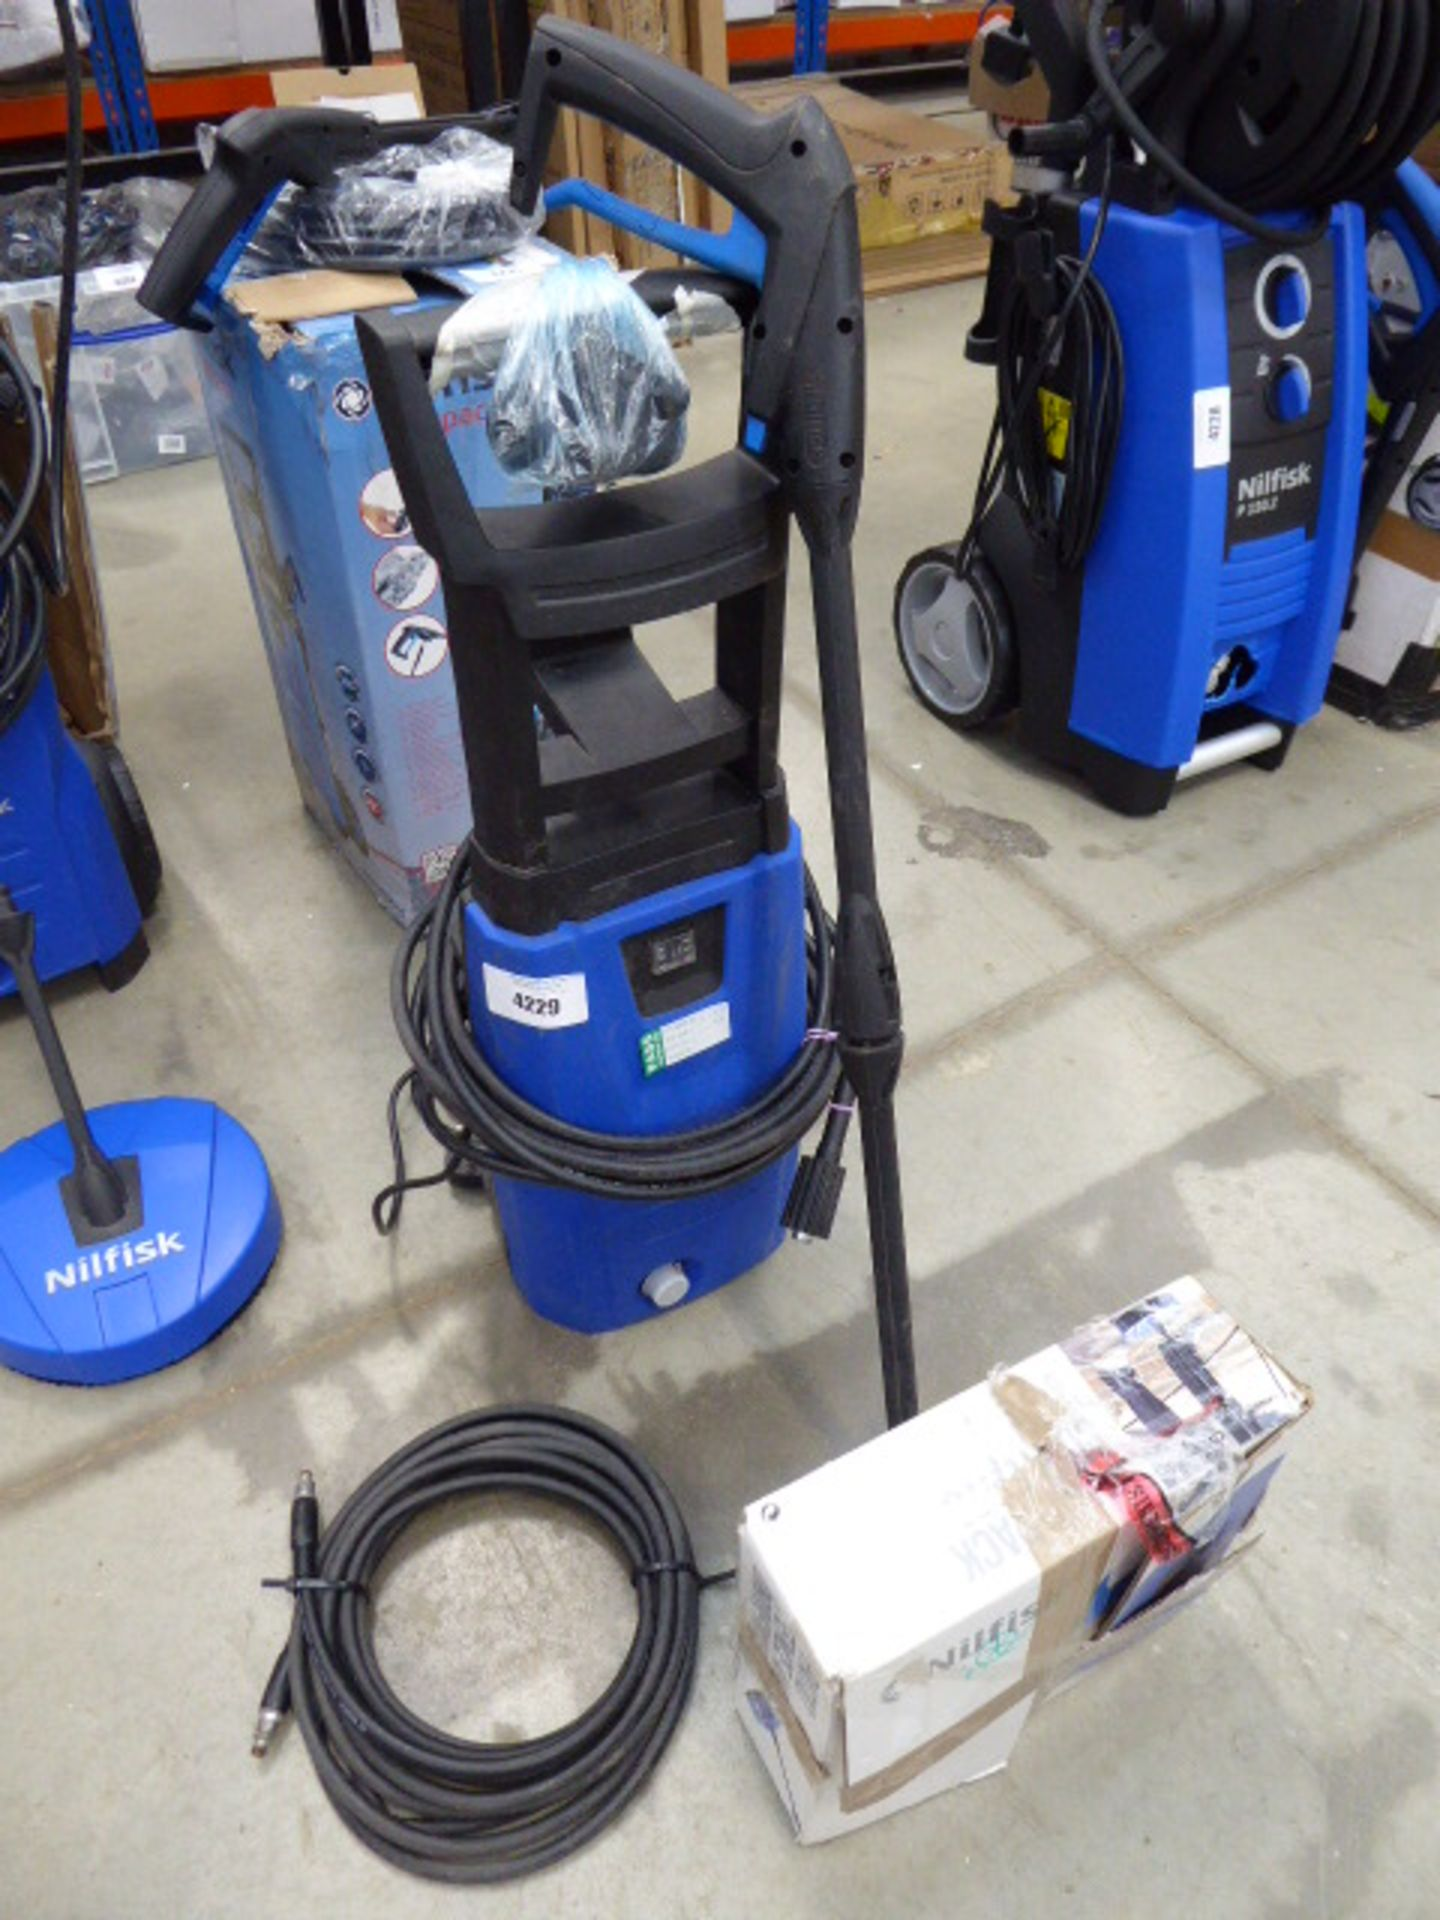 Small Nilfisk pressure washer with patio cleaning head